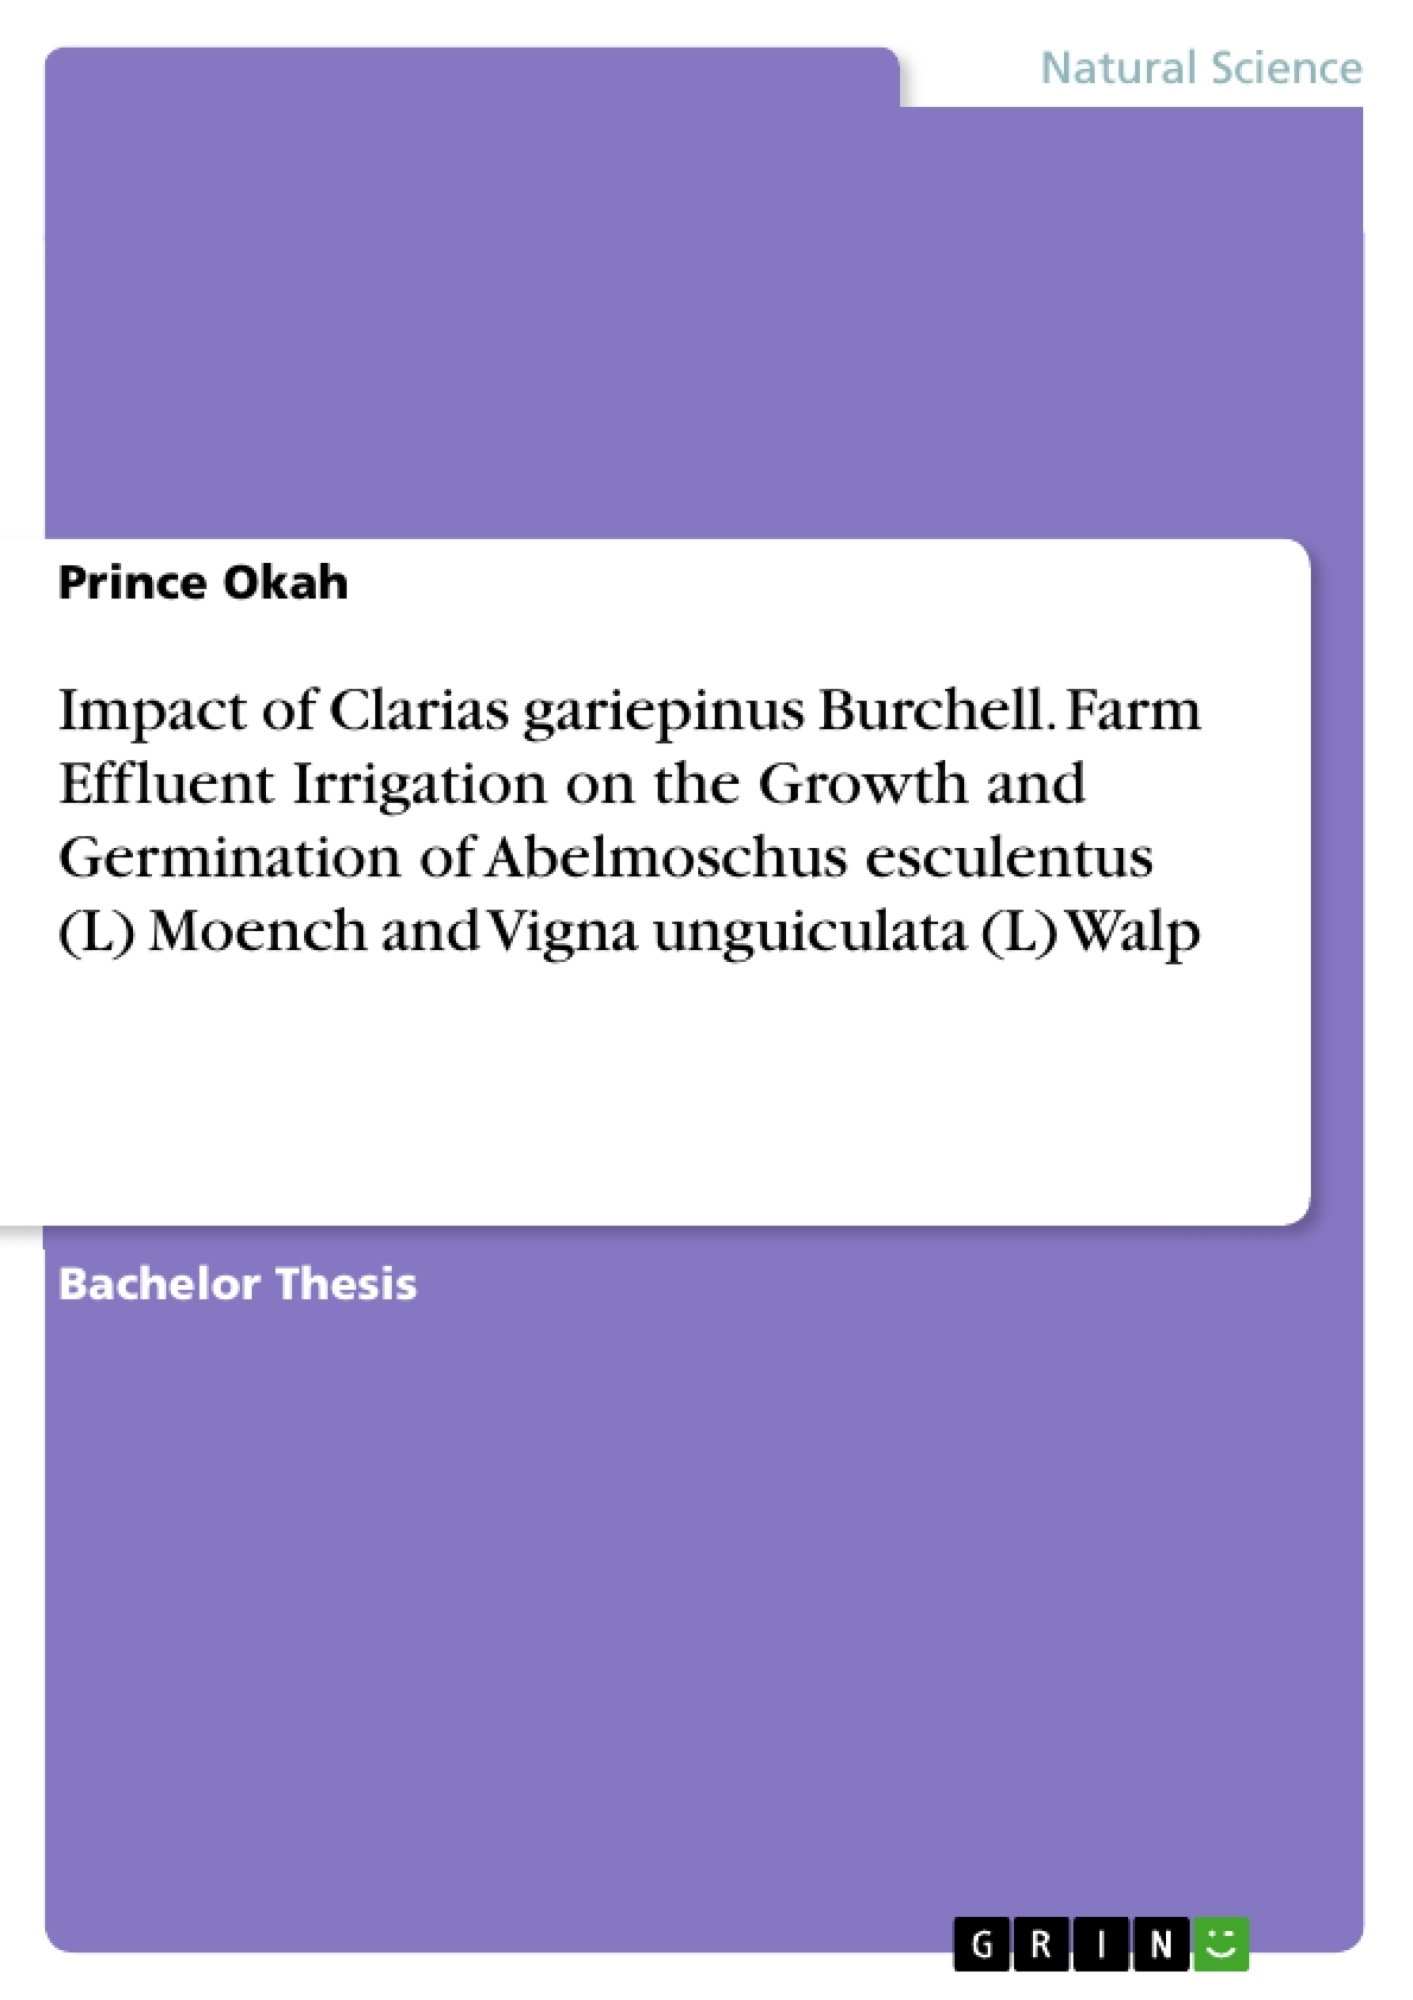 Title: Impact of Clarias gariepinus Burchell. Farm Effluent Irrigation on the Growth and Germination of Abelmoschus esculentus (L) Moench and Vigna unguiculata (L) Walp